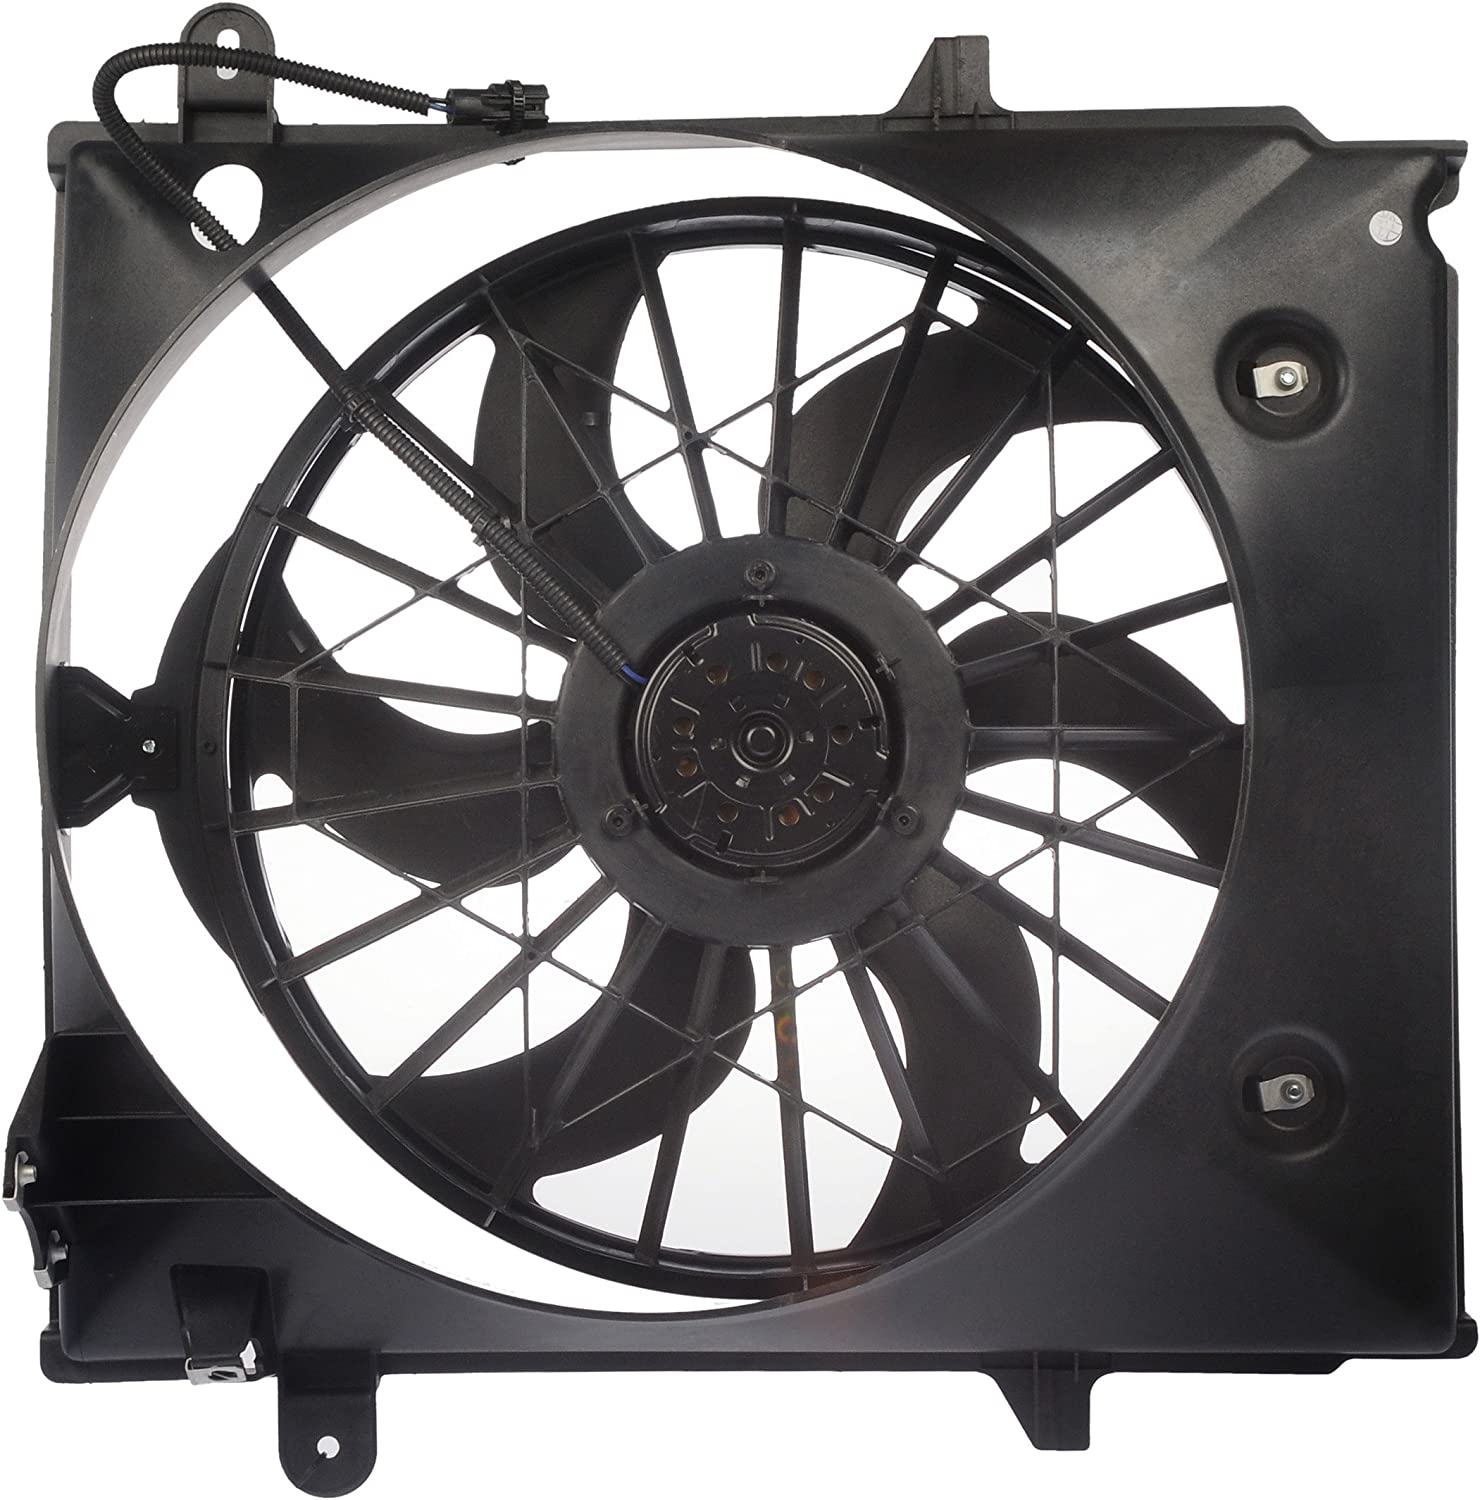 Dorman 620-162 Radiator Fan Assembly for Ford Ranger